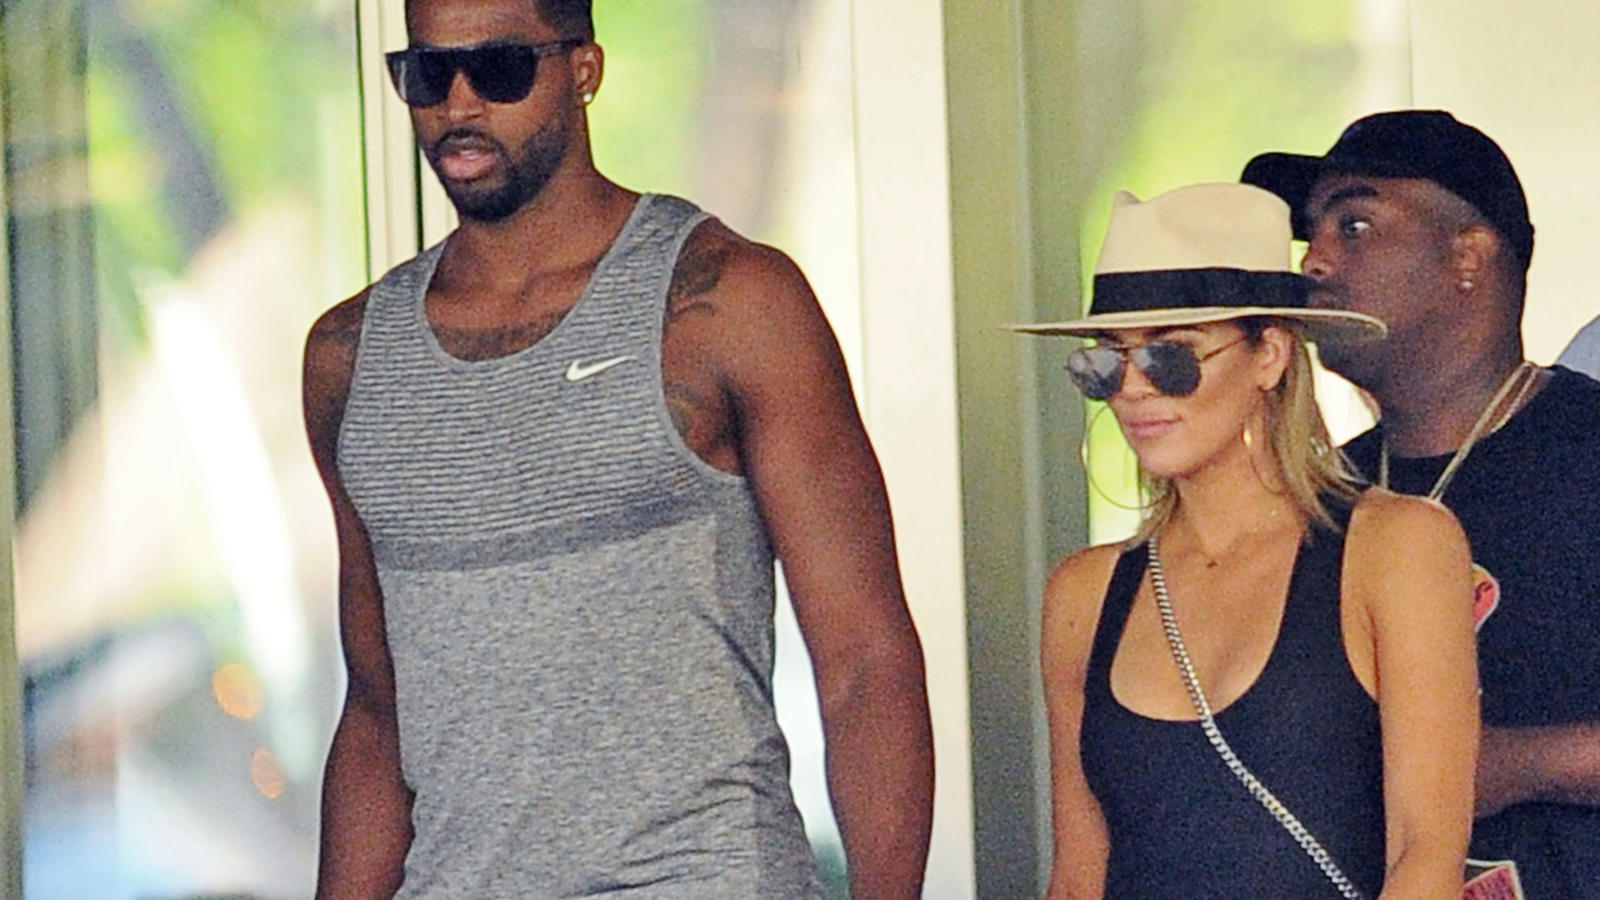 Tristan Thompson holds hands with Khloe Kardashian after shopping at Bal Harbor Shops in Bal Harbor, FL.